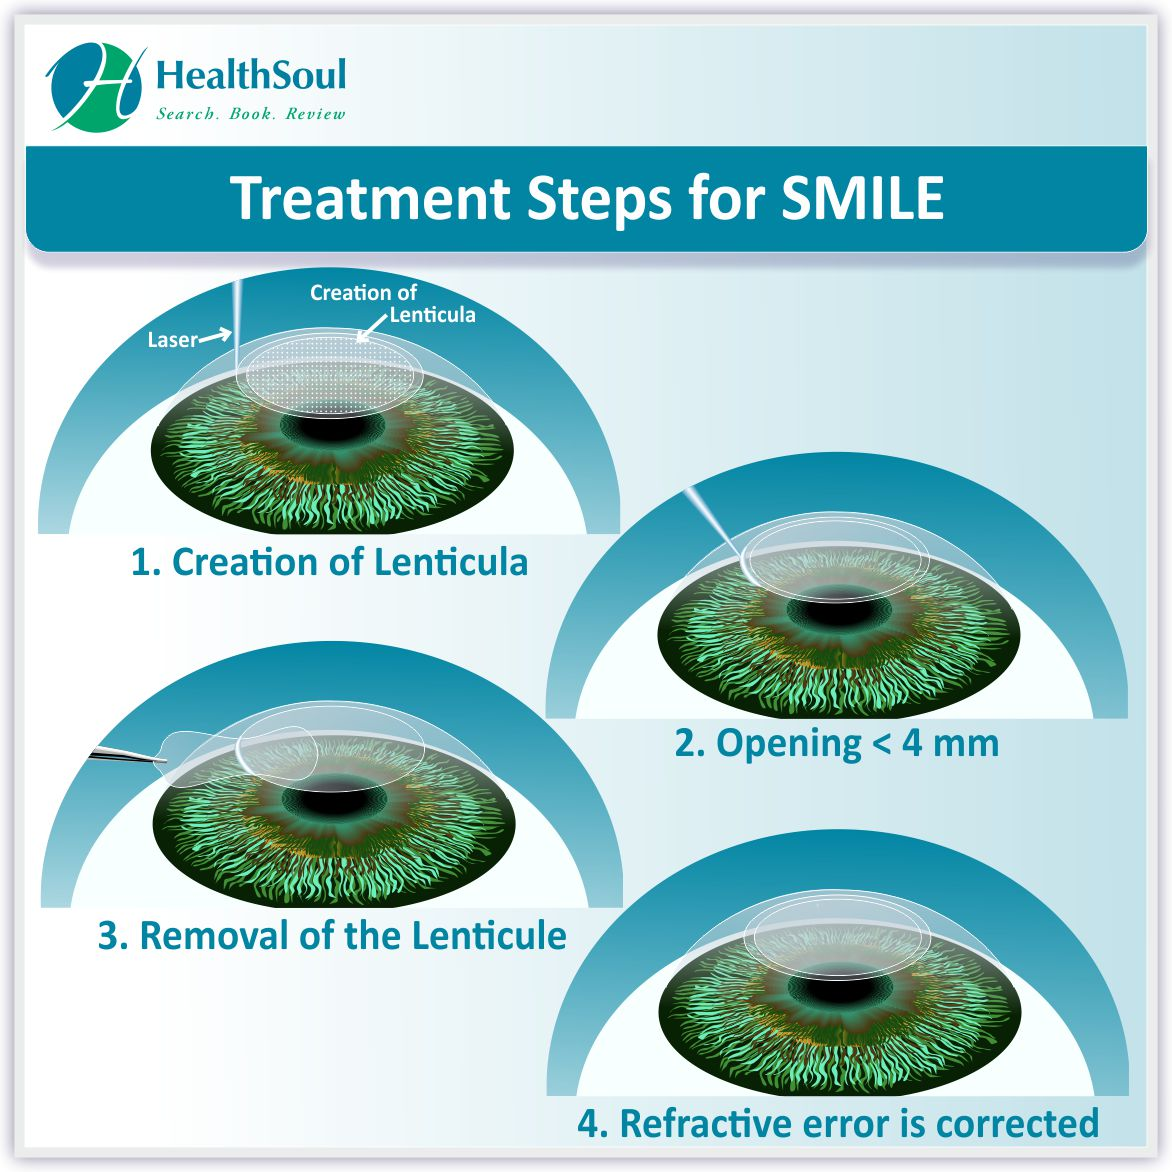 SMILE Teratment steps | HealthSoul